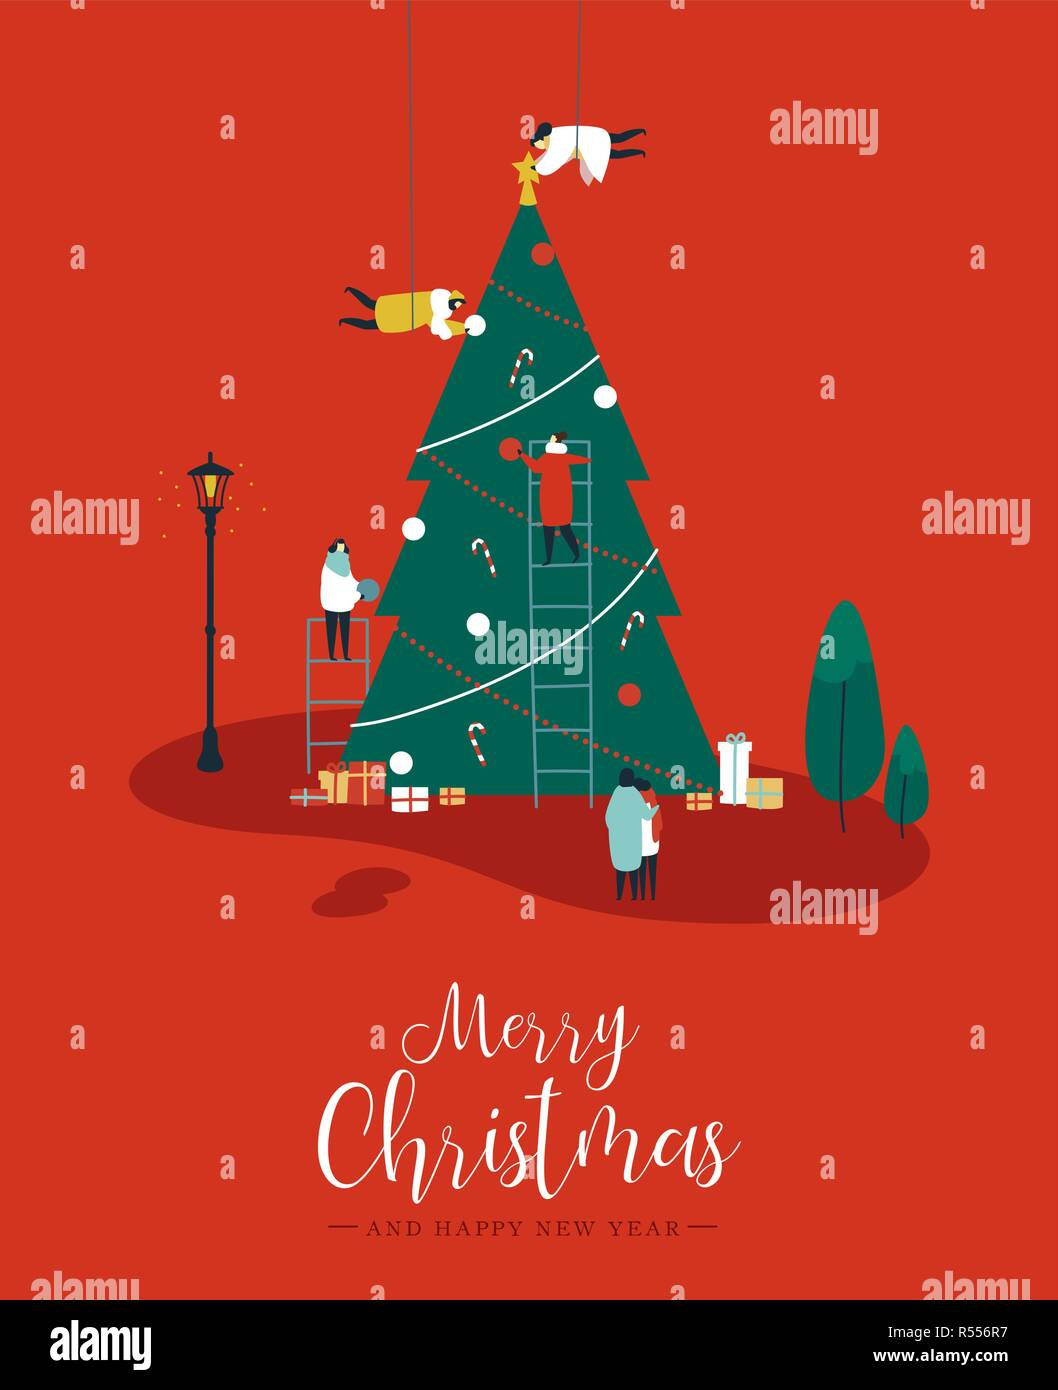 merry christmas and happy new year greeting card people group making big xmas pine tree together for holiday season with ornament decoration gifts